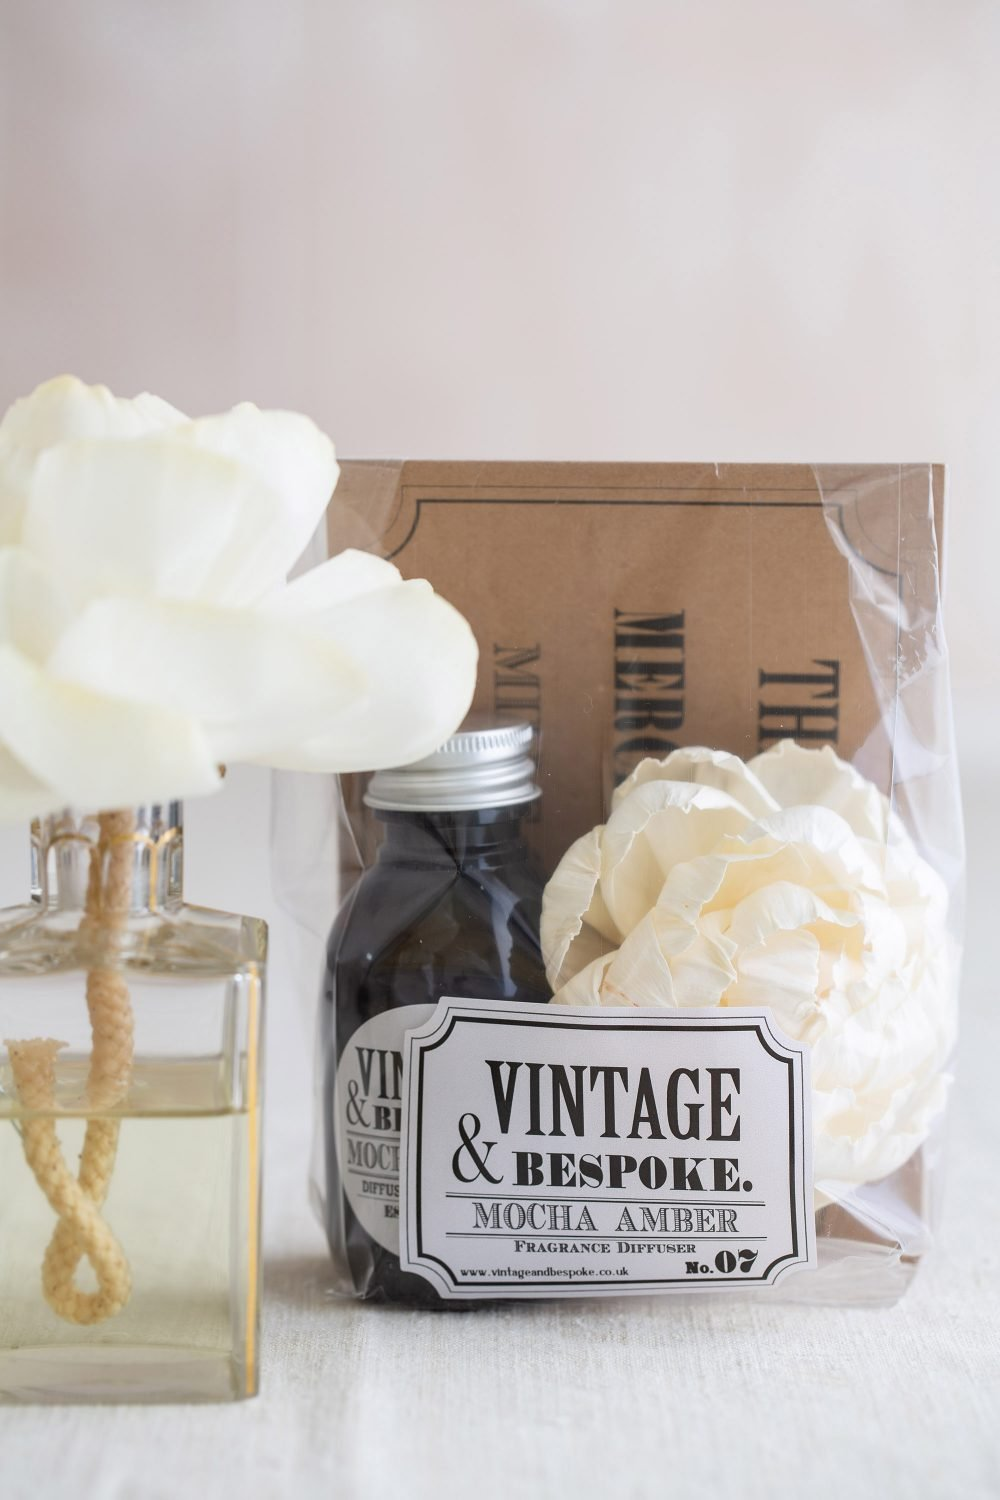 Diffuser Flower and Fragrance Set from Vintage and Bespoke